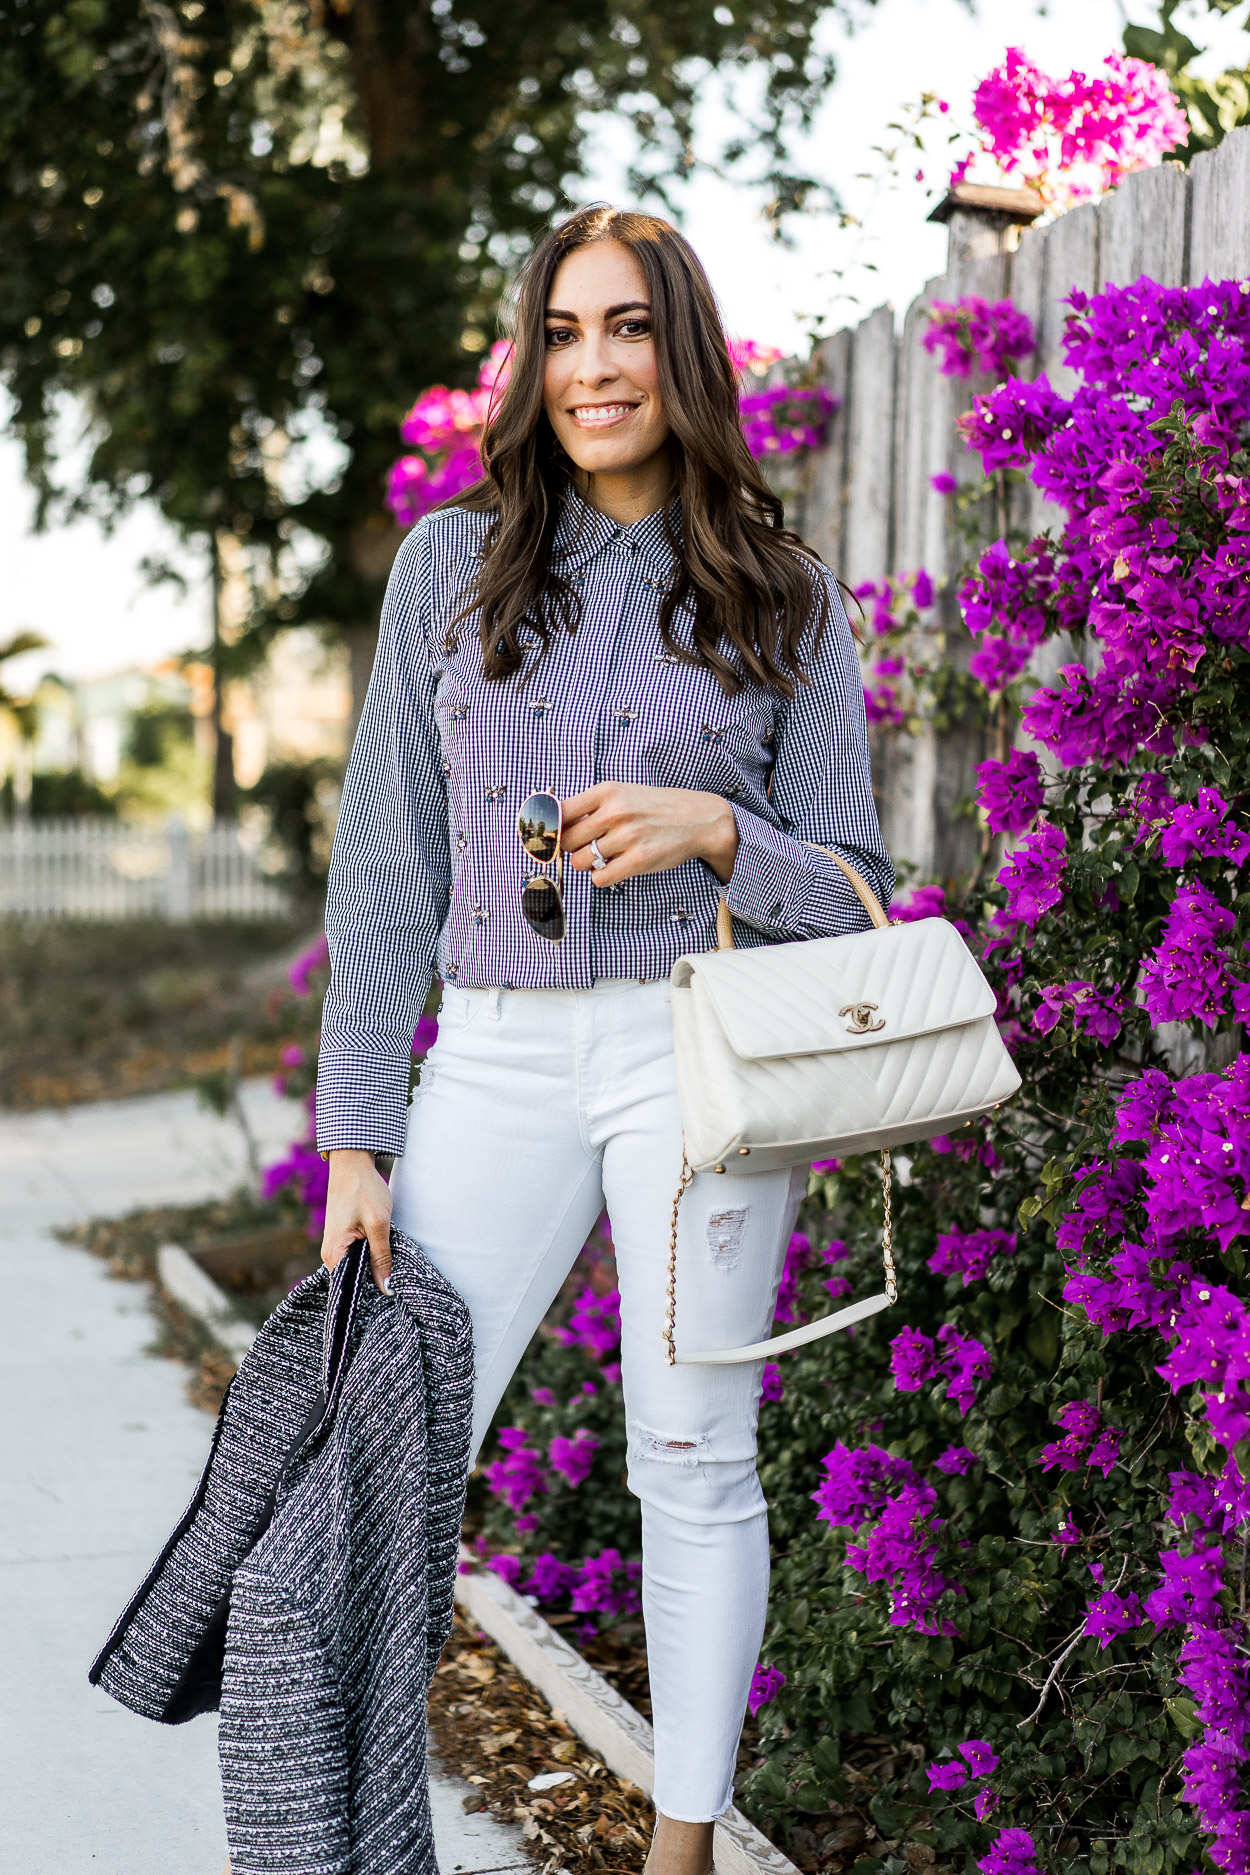 55ff13e4f82 Amanda of A Glam Lifestyle blog styles the Talbots spring collection tweed  blazer and embellished top